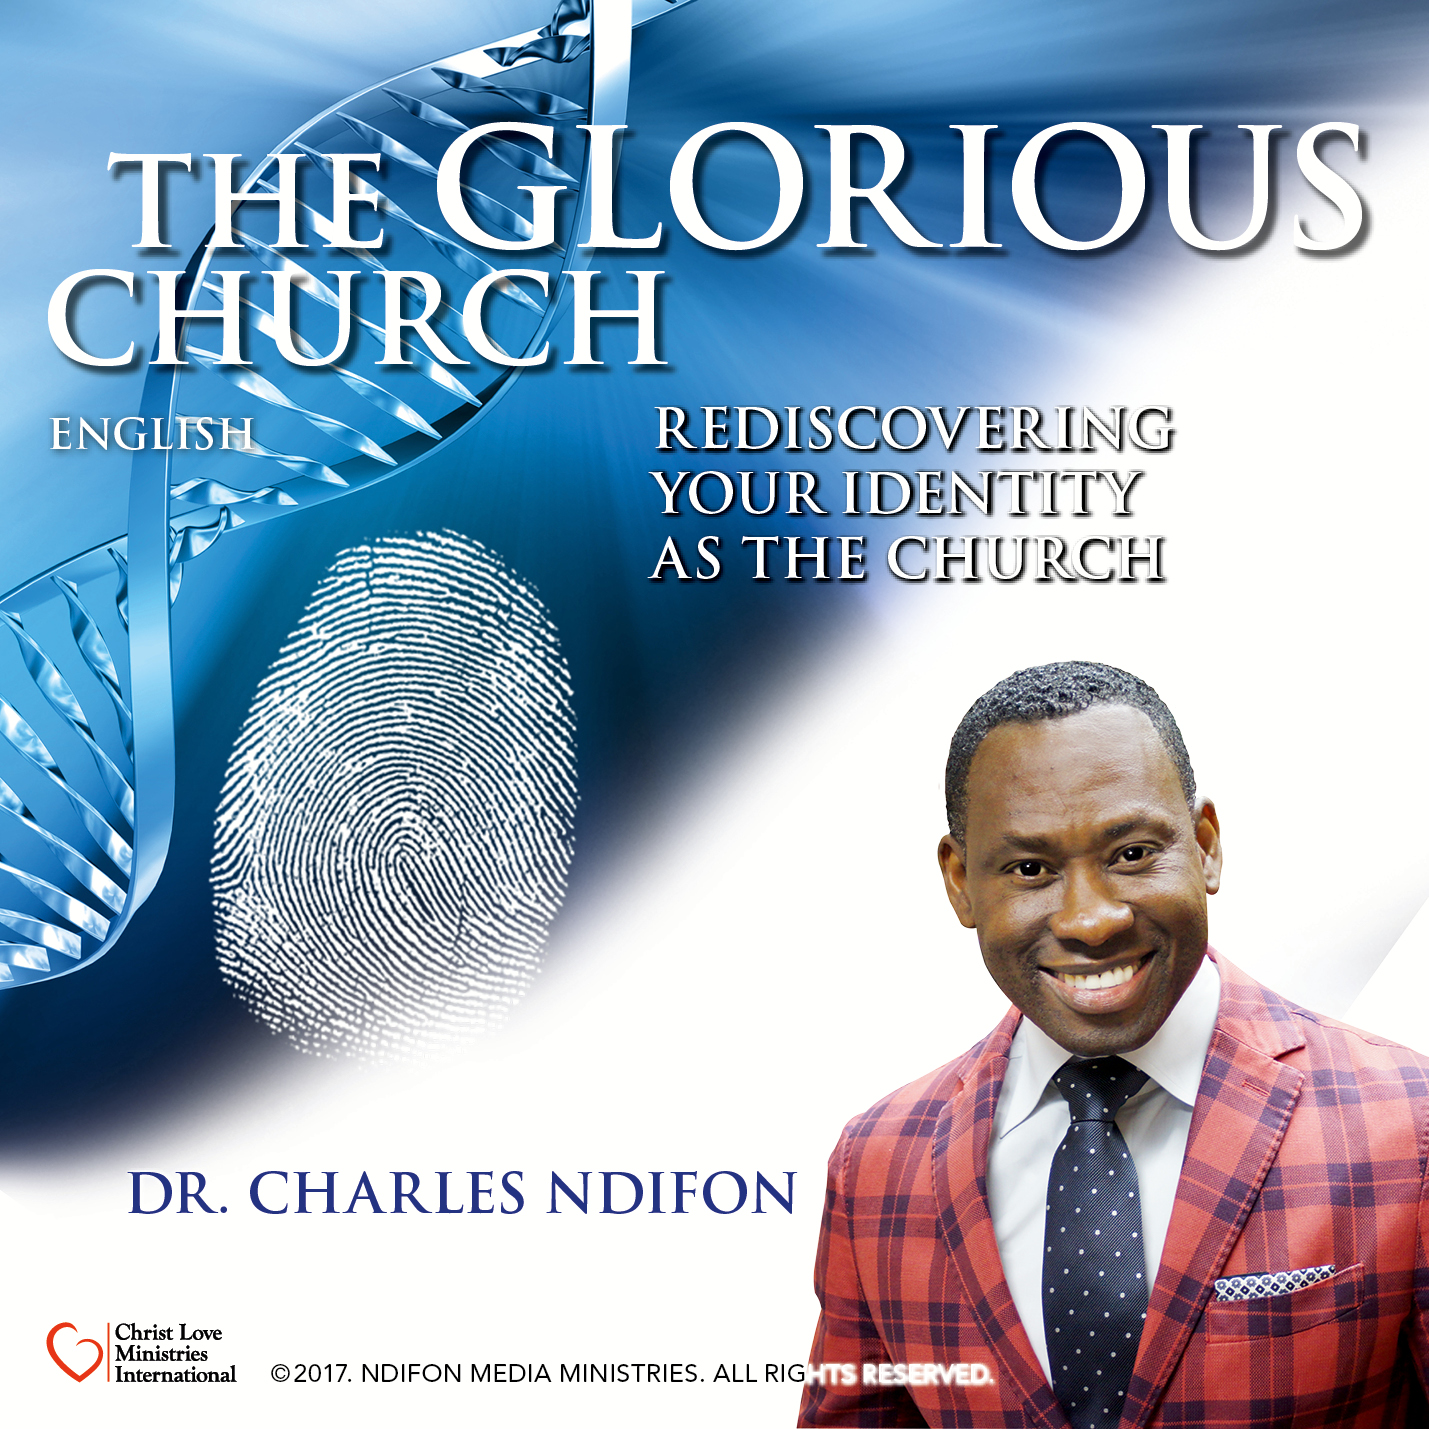 The-Glorious-Church Rediscovering Your Identity as the Church